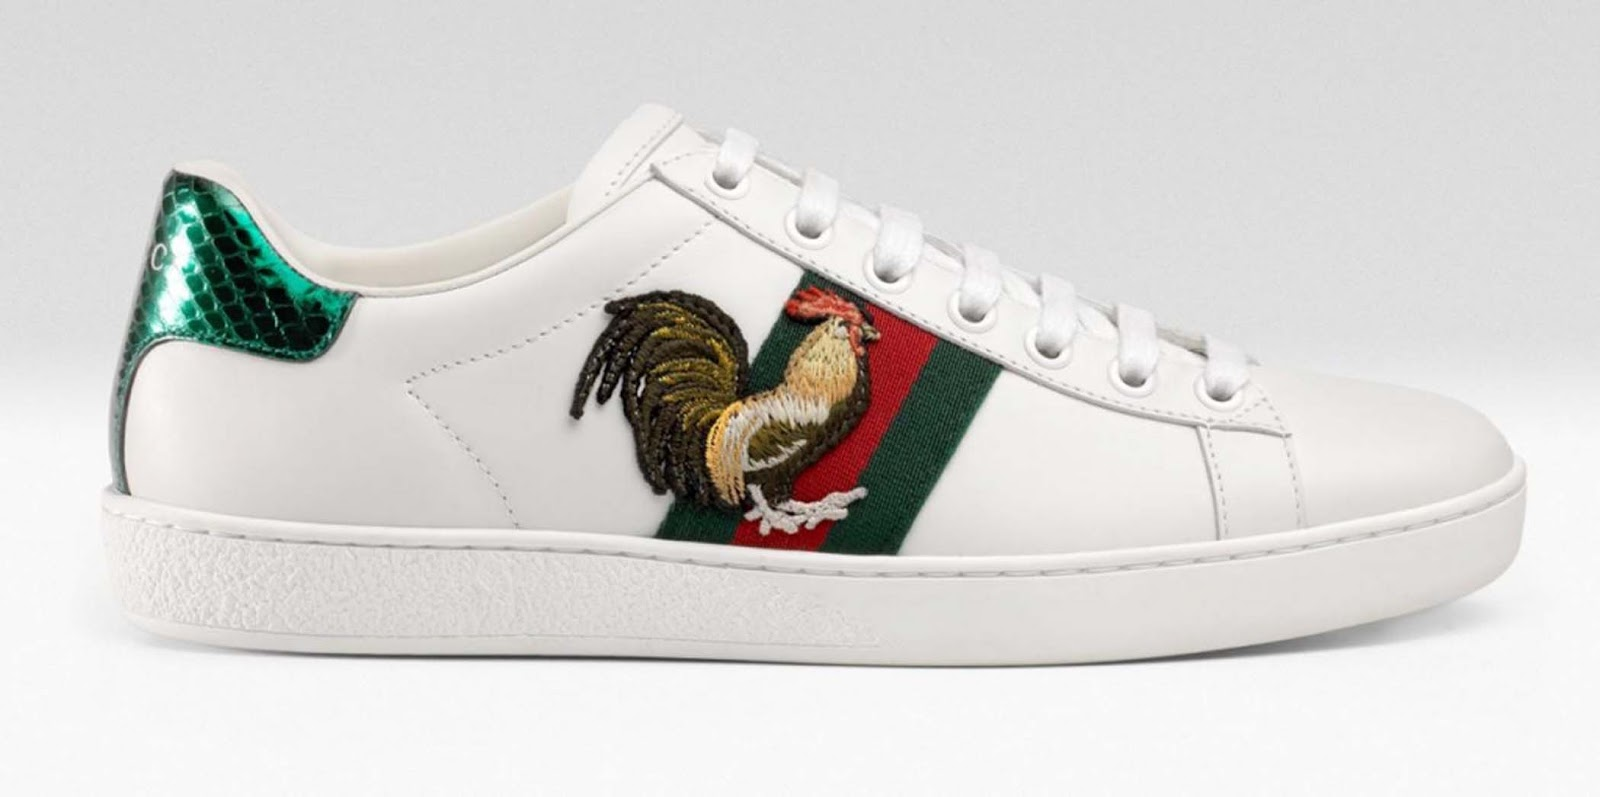 Eniwhere Fashion - News on Fashion - Anno del Gallo - Gucci